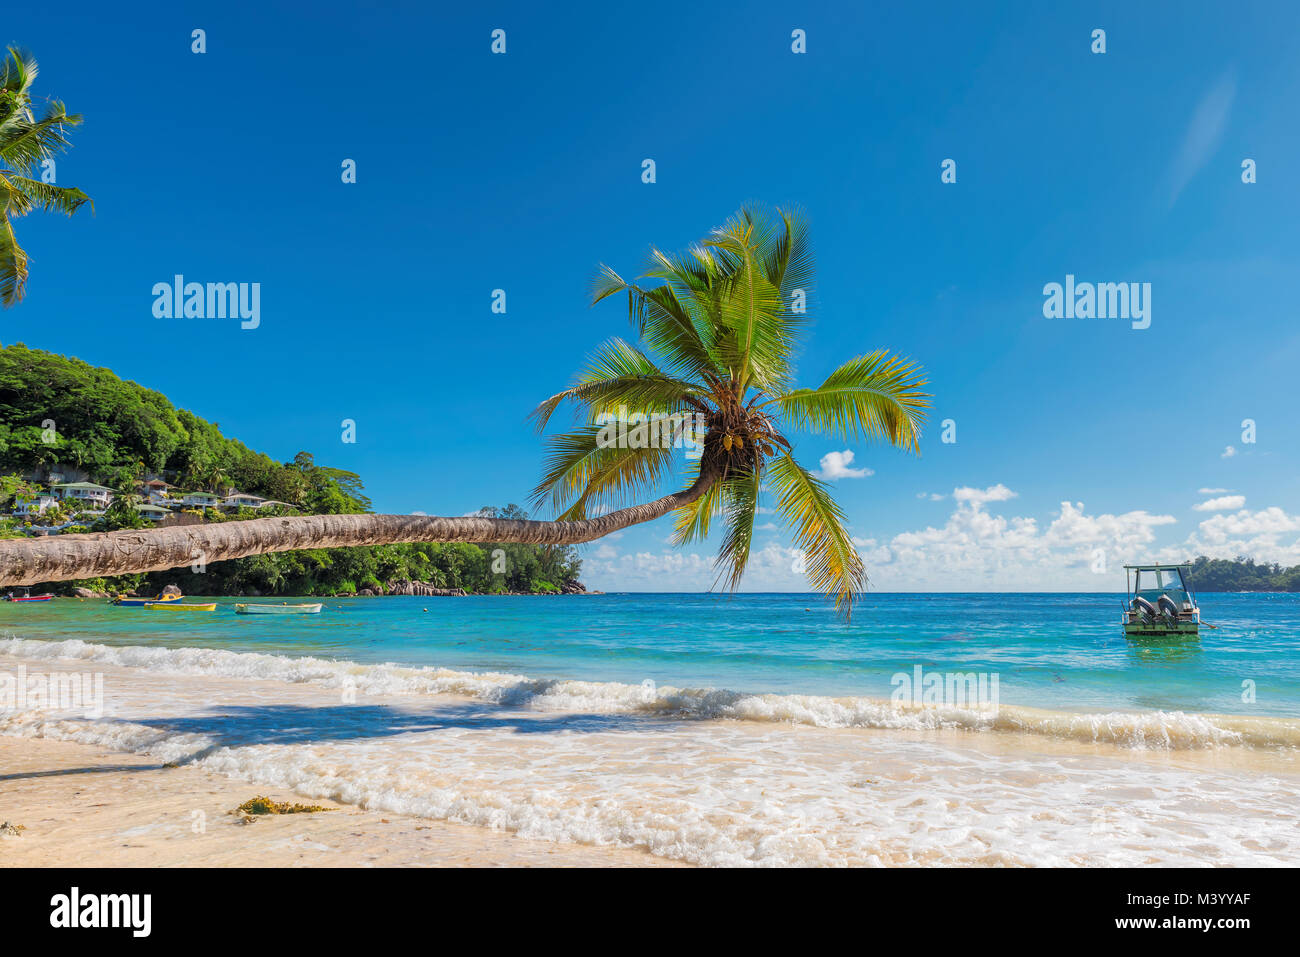 Coconut Palm tree over the sandy beach - Stock Image